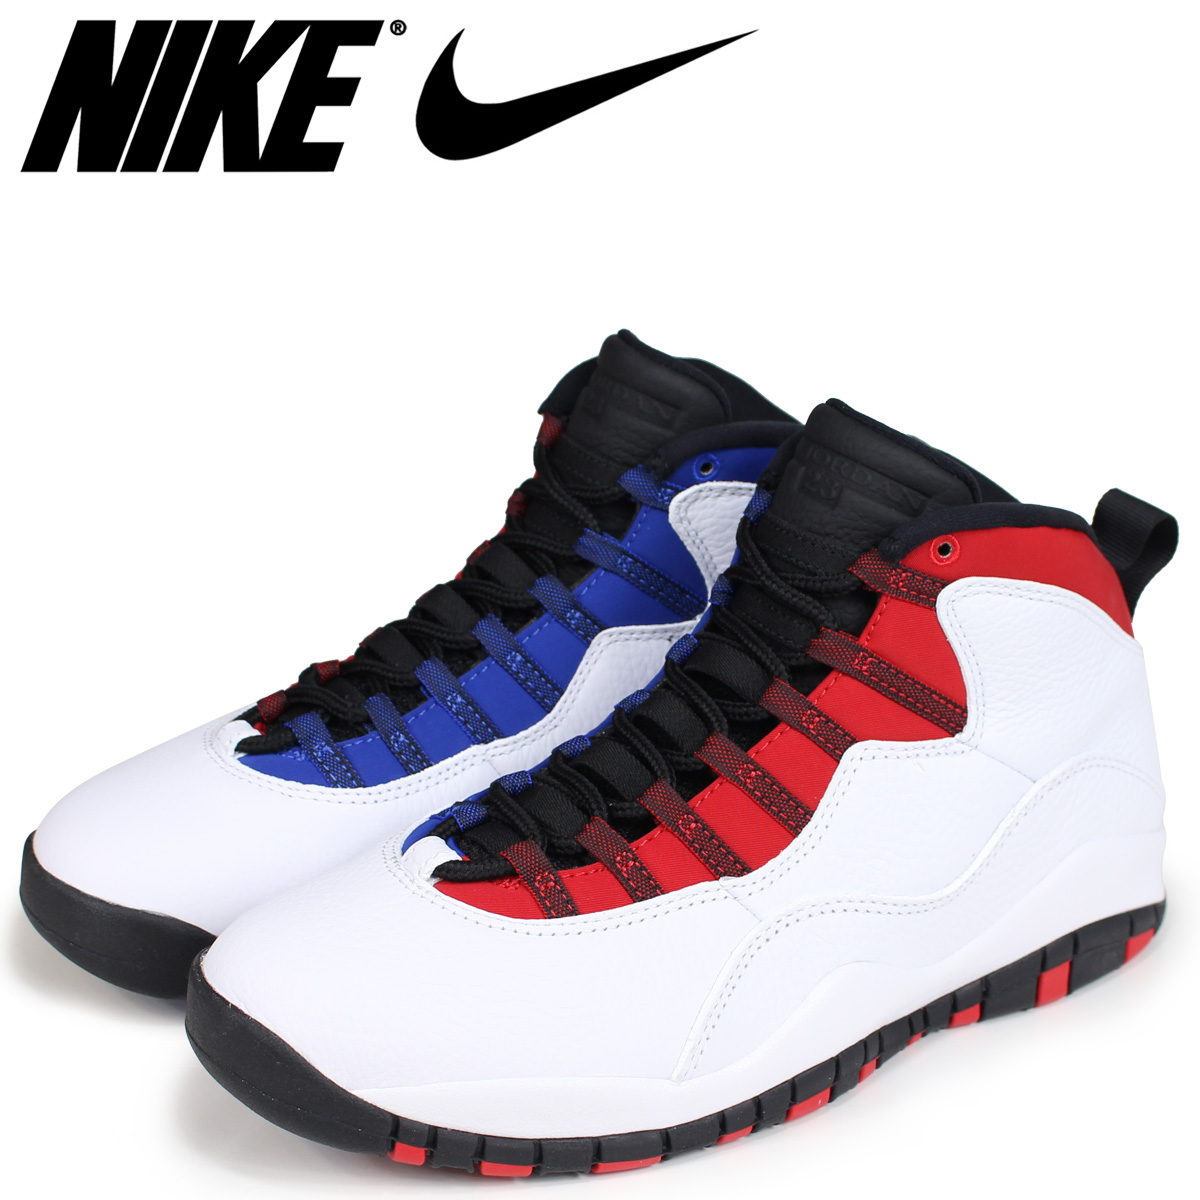 NIKE Nike Air Jordan 10 nostalgic sneakers men AIR JORDAN 10 RETRO RUSSELL  WESTBROOK 310,805-160 white white